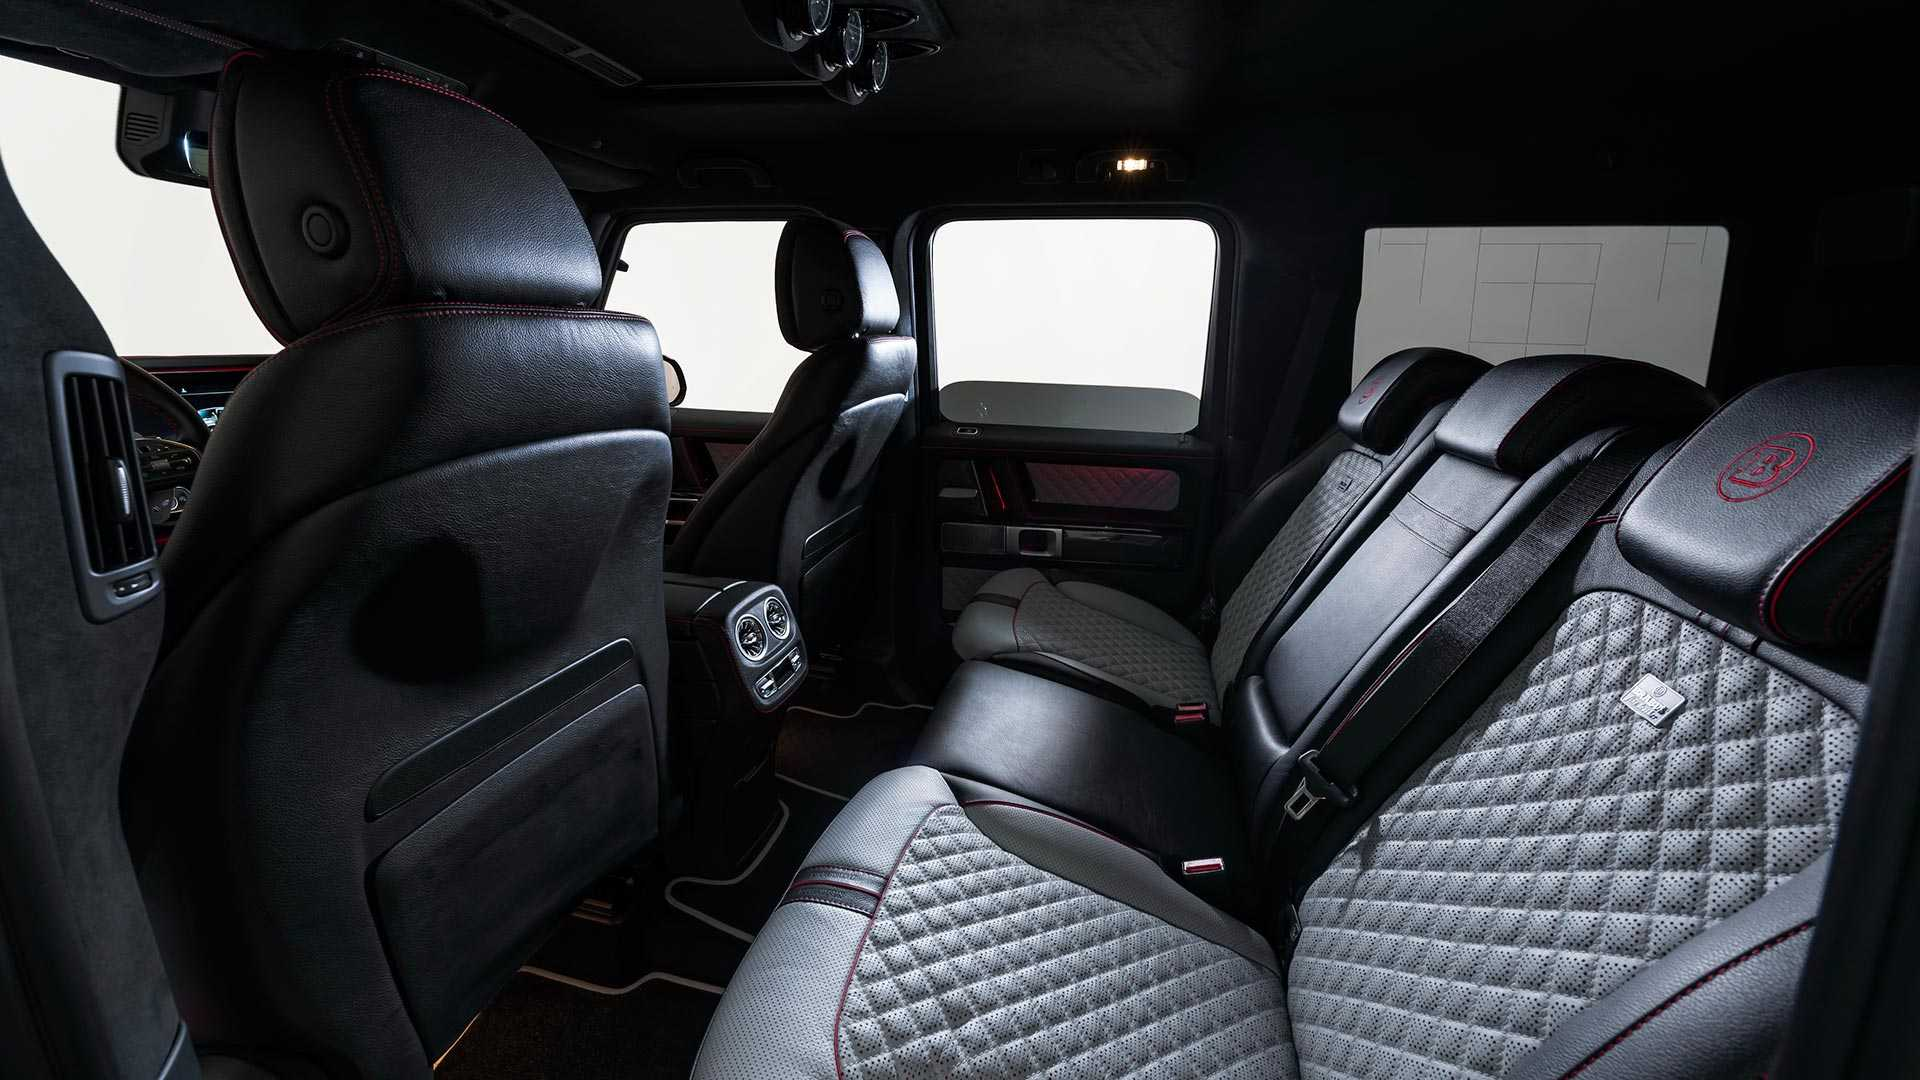 Brabus Mercedes-AMG G63 Shadow 800